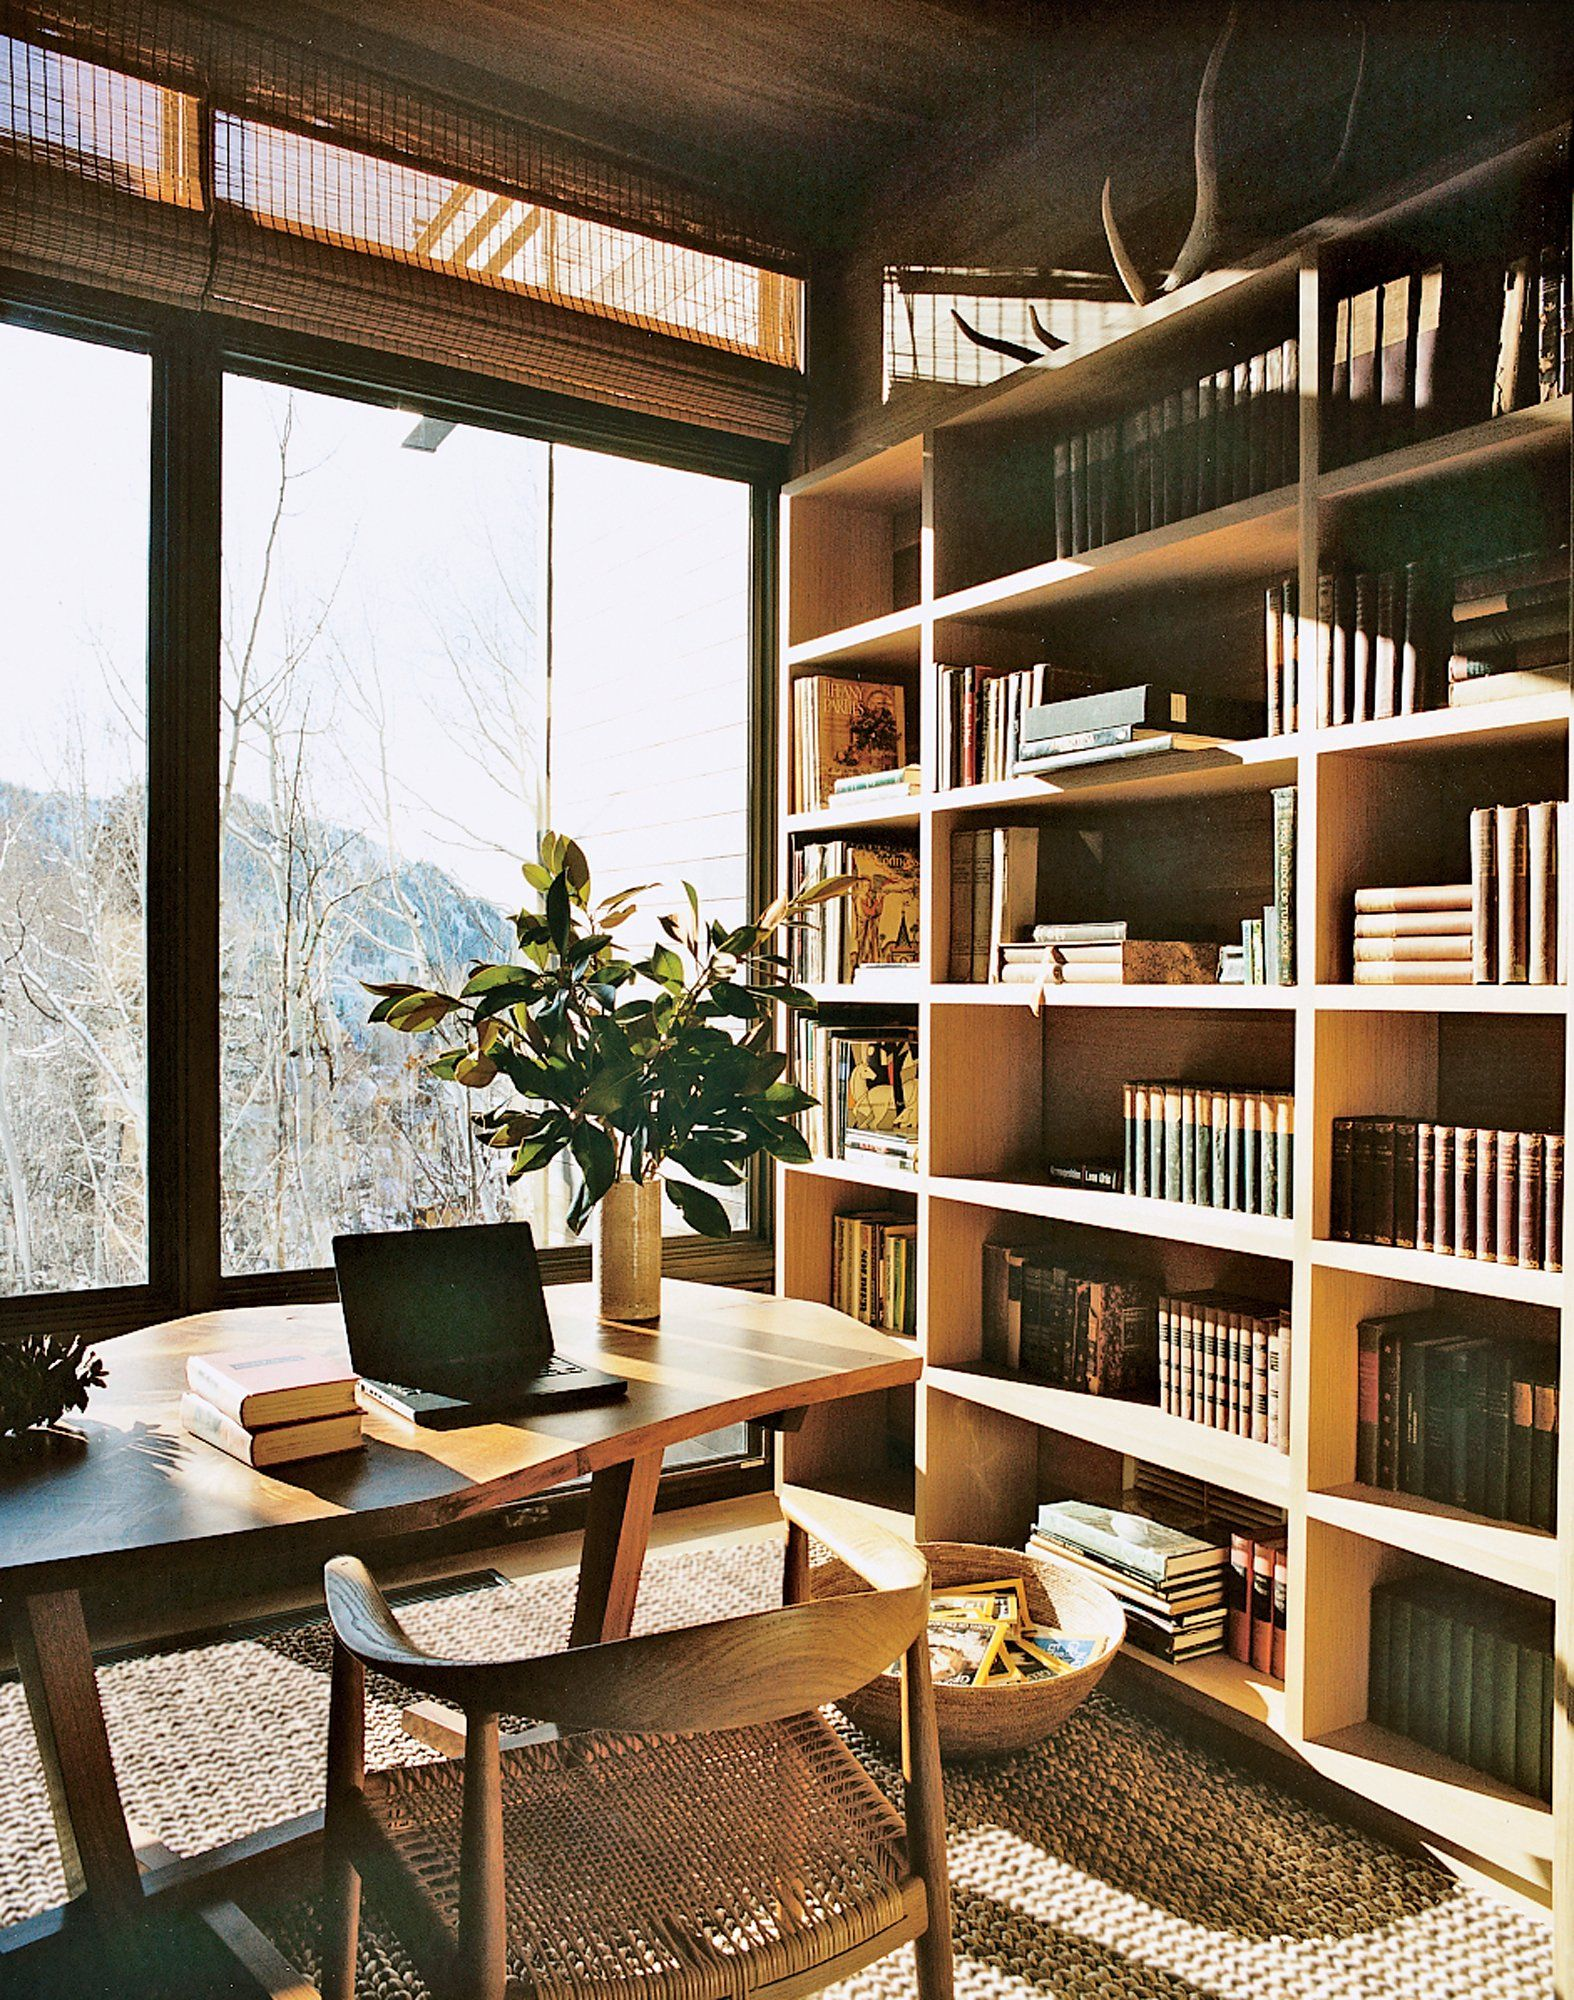 Aerin Lauders Aspen Modern, Light Filled Ski Lodge Library Photographed By Fran